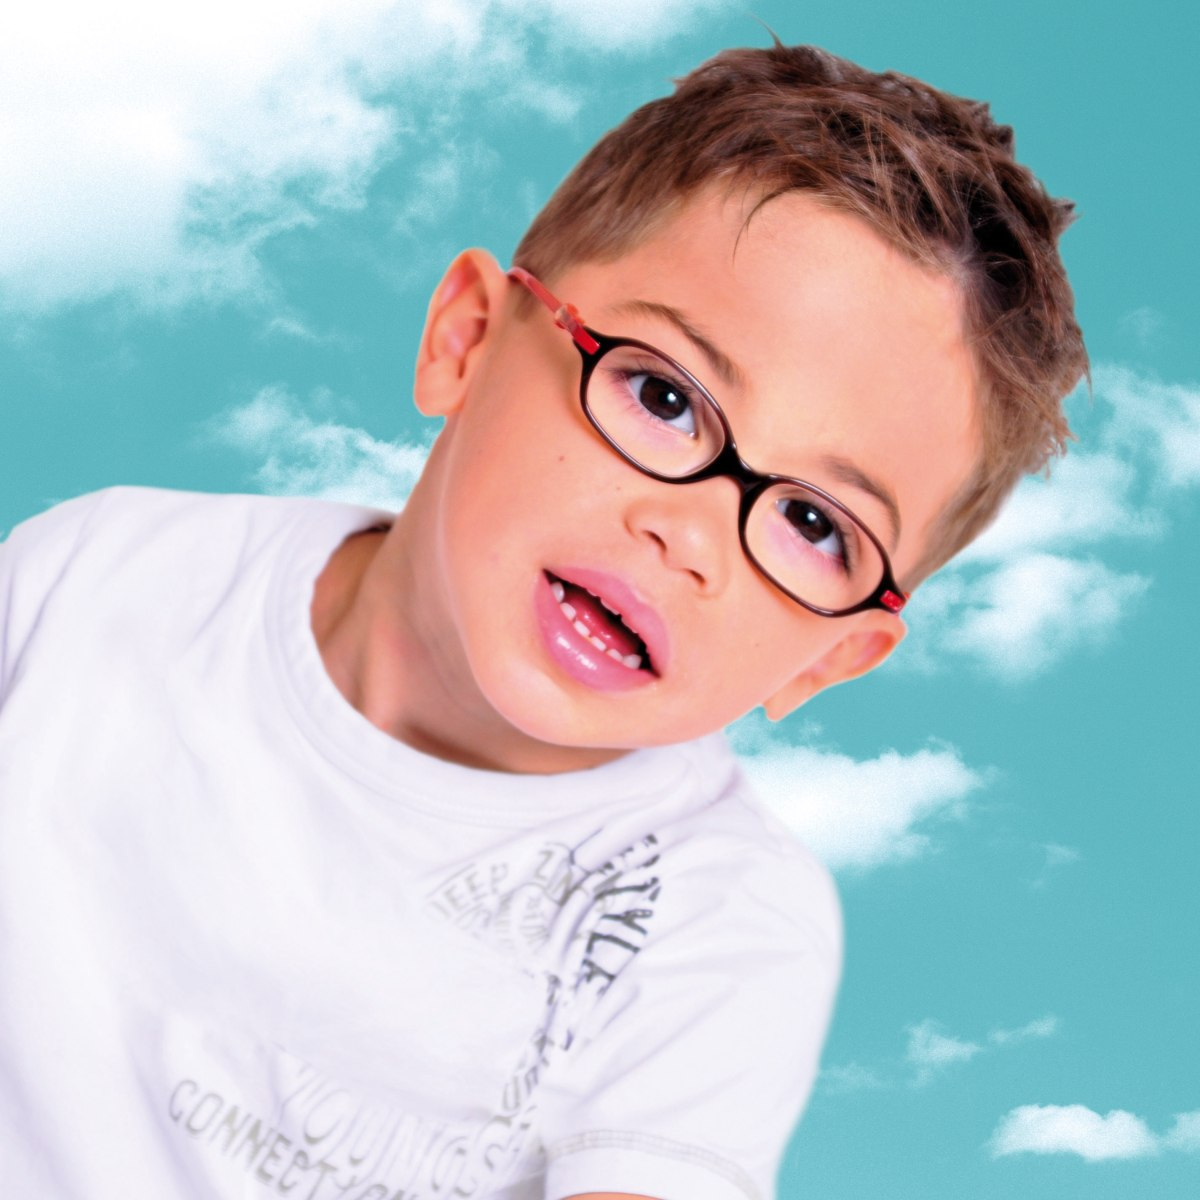 Short And Sporty Haircut For A Little Boy Who Wears Glasses